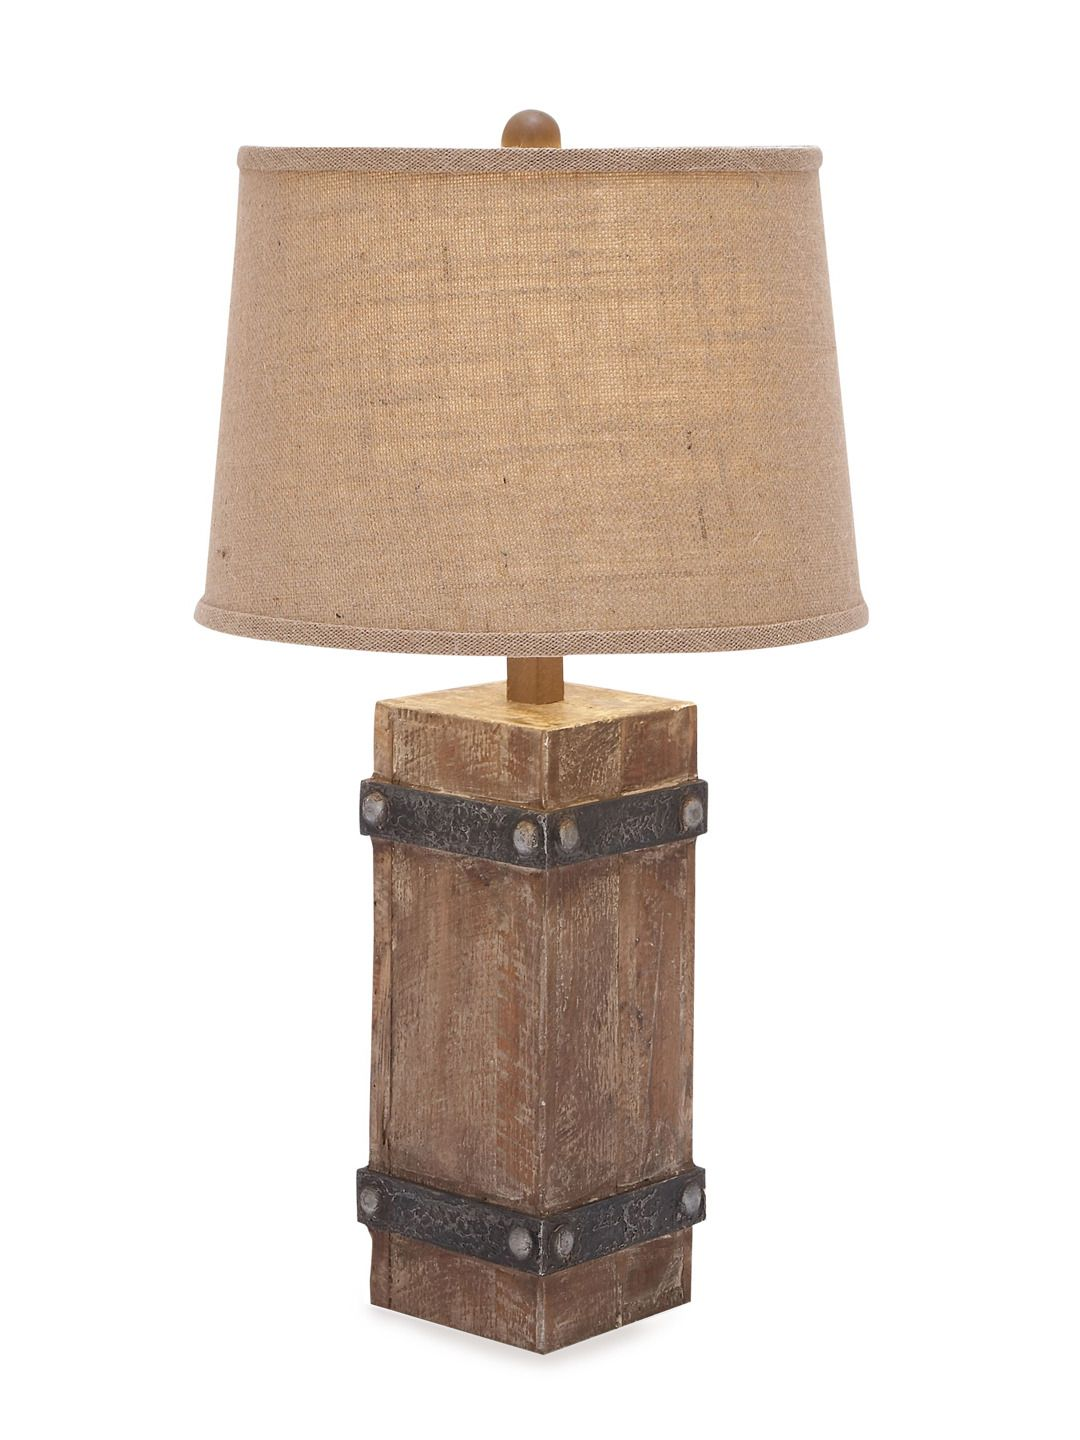 Wooden Table Lamp By Uma At Gilt Rustic Table Lamps Table Lamp Wood Wooden Table Lamps